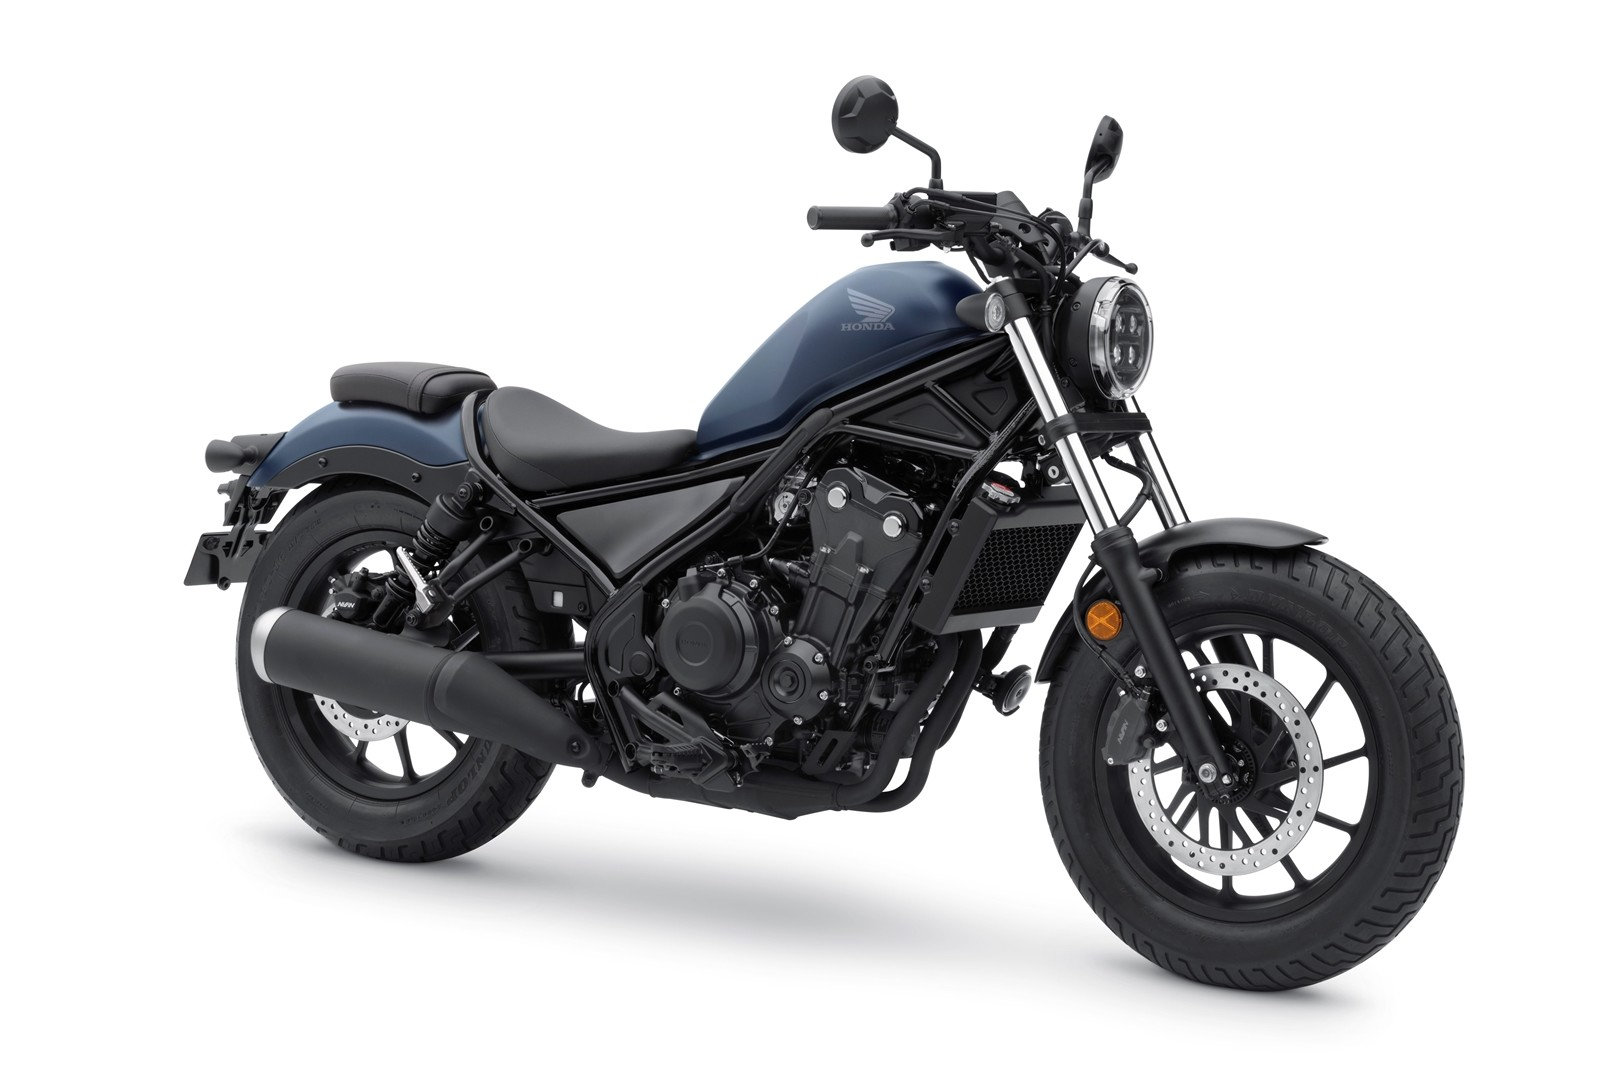 Foto de Honda Rebel 500 2020 (14/18)